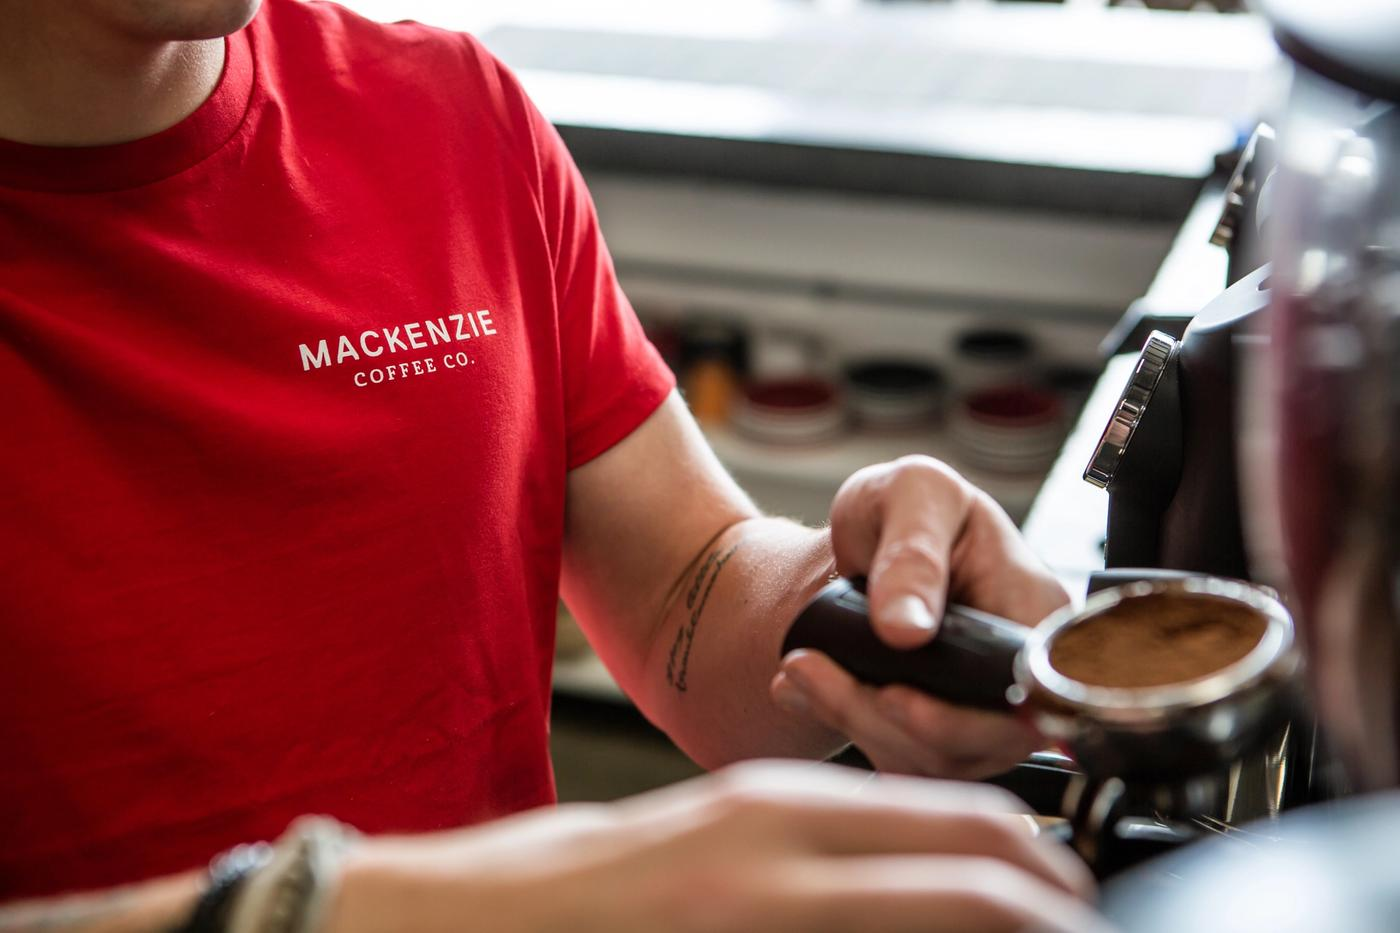 Barista making mackenzie coffee